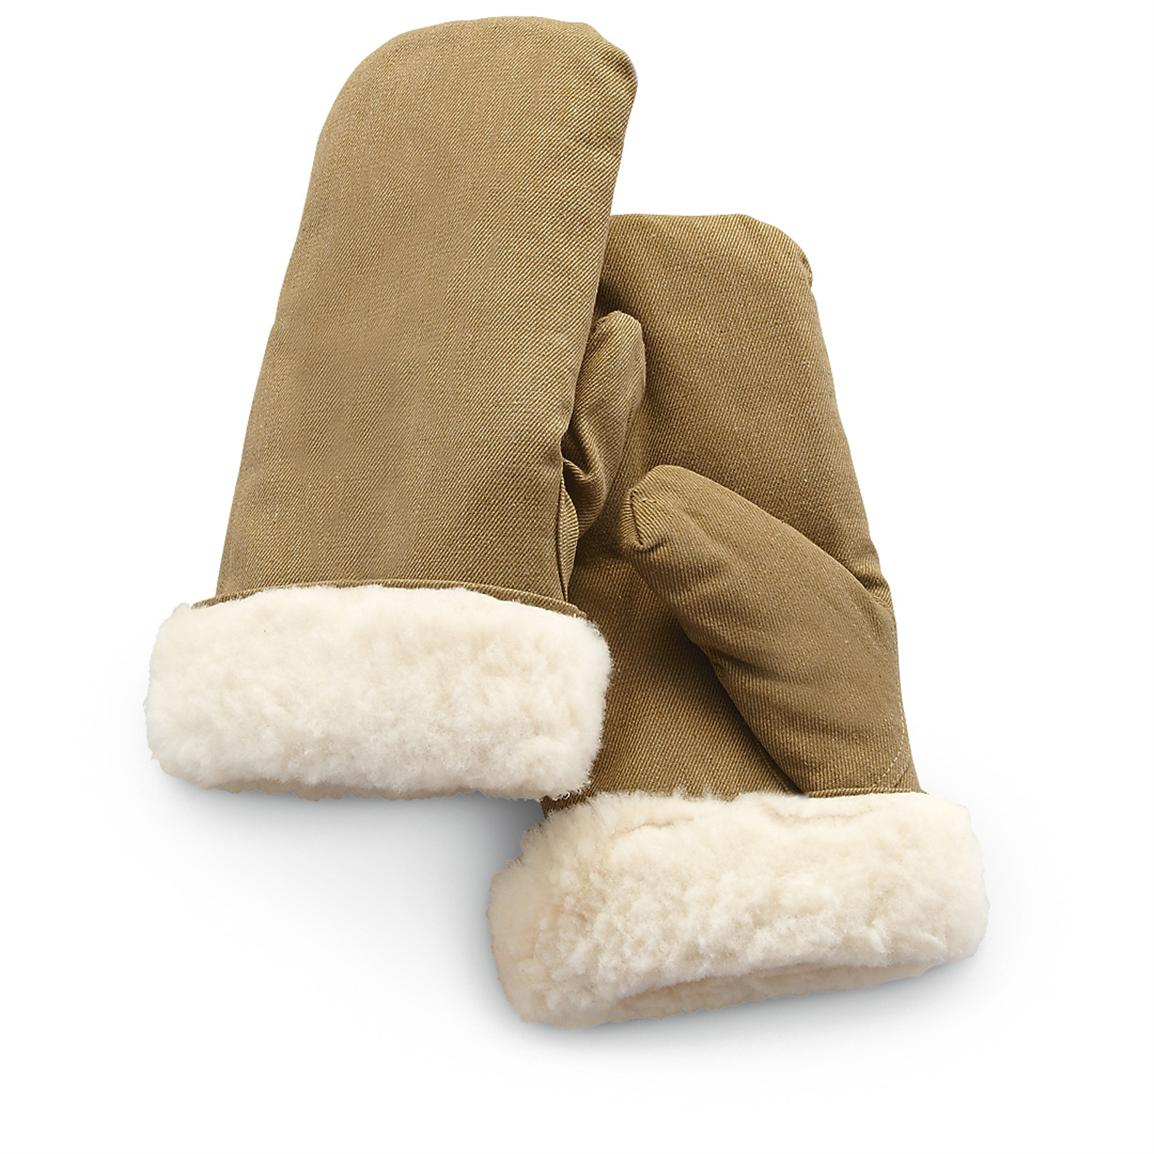 Pair of Russian Military Surplus WWII-style Repro Sherpa Mittens